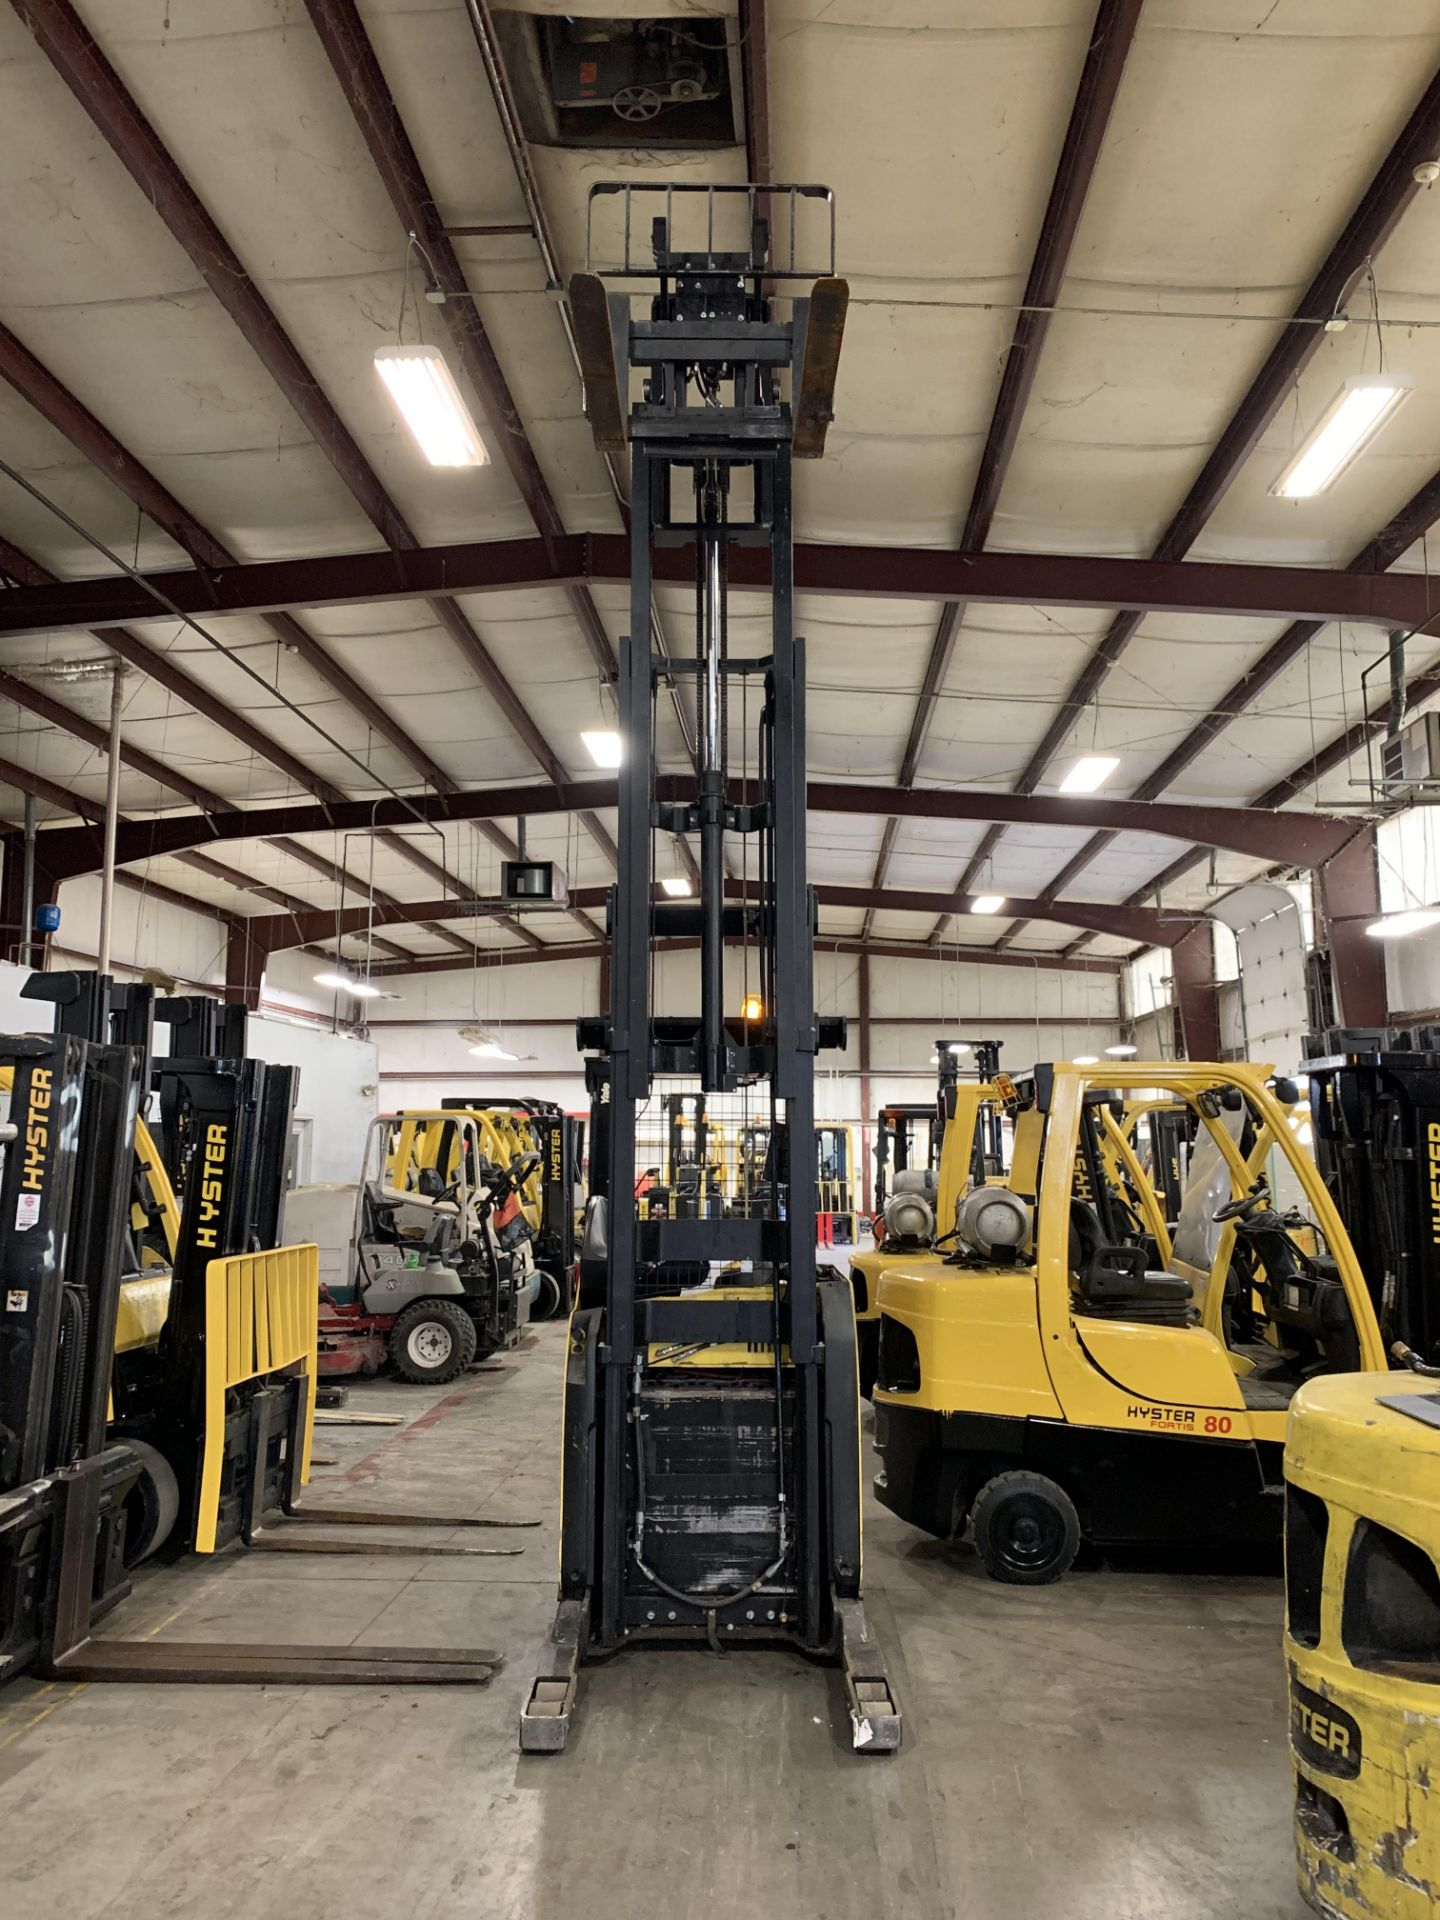 """*LOCATED IN OHIO* 2015 HYSTER 3,500-LB. CAPACITY REACH TRUCK, MOD NR35, 111"""" LOWER/251'' LIFT HEIGHT - Image 7 of 7"""